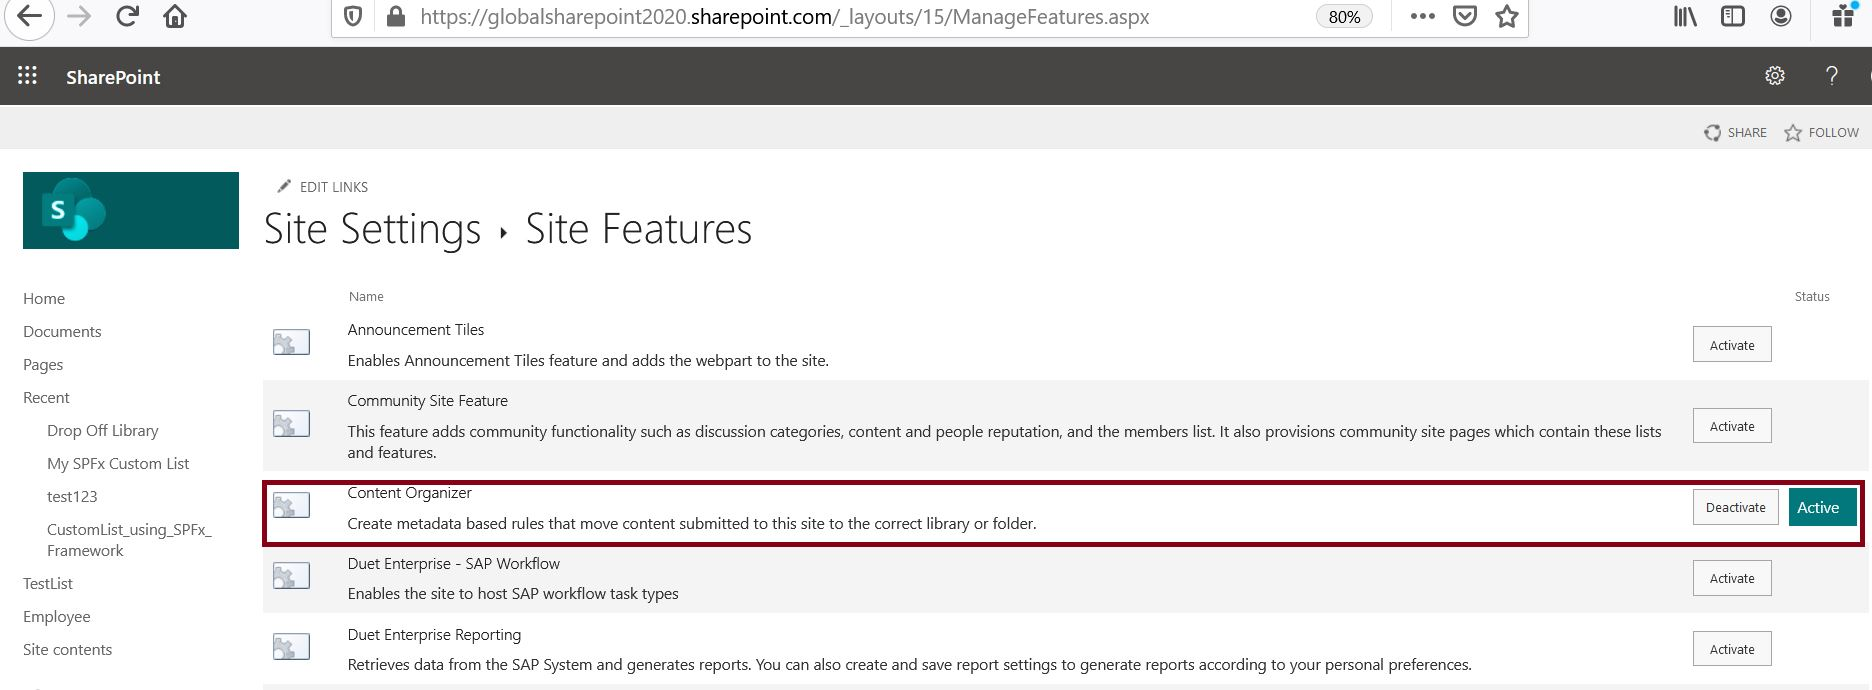 Content organizer site scoped feature has been activated successfully